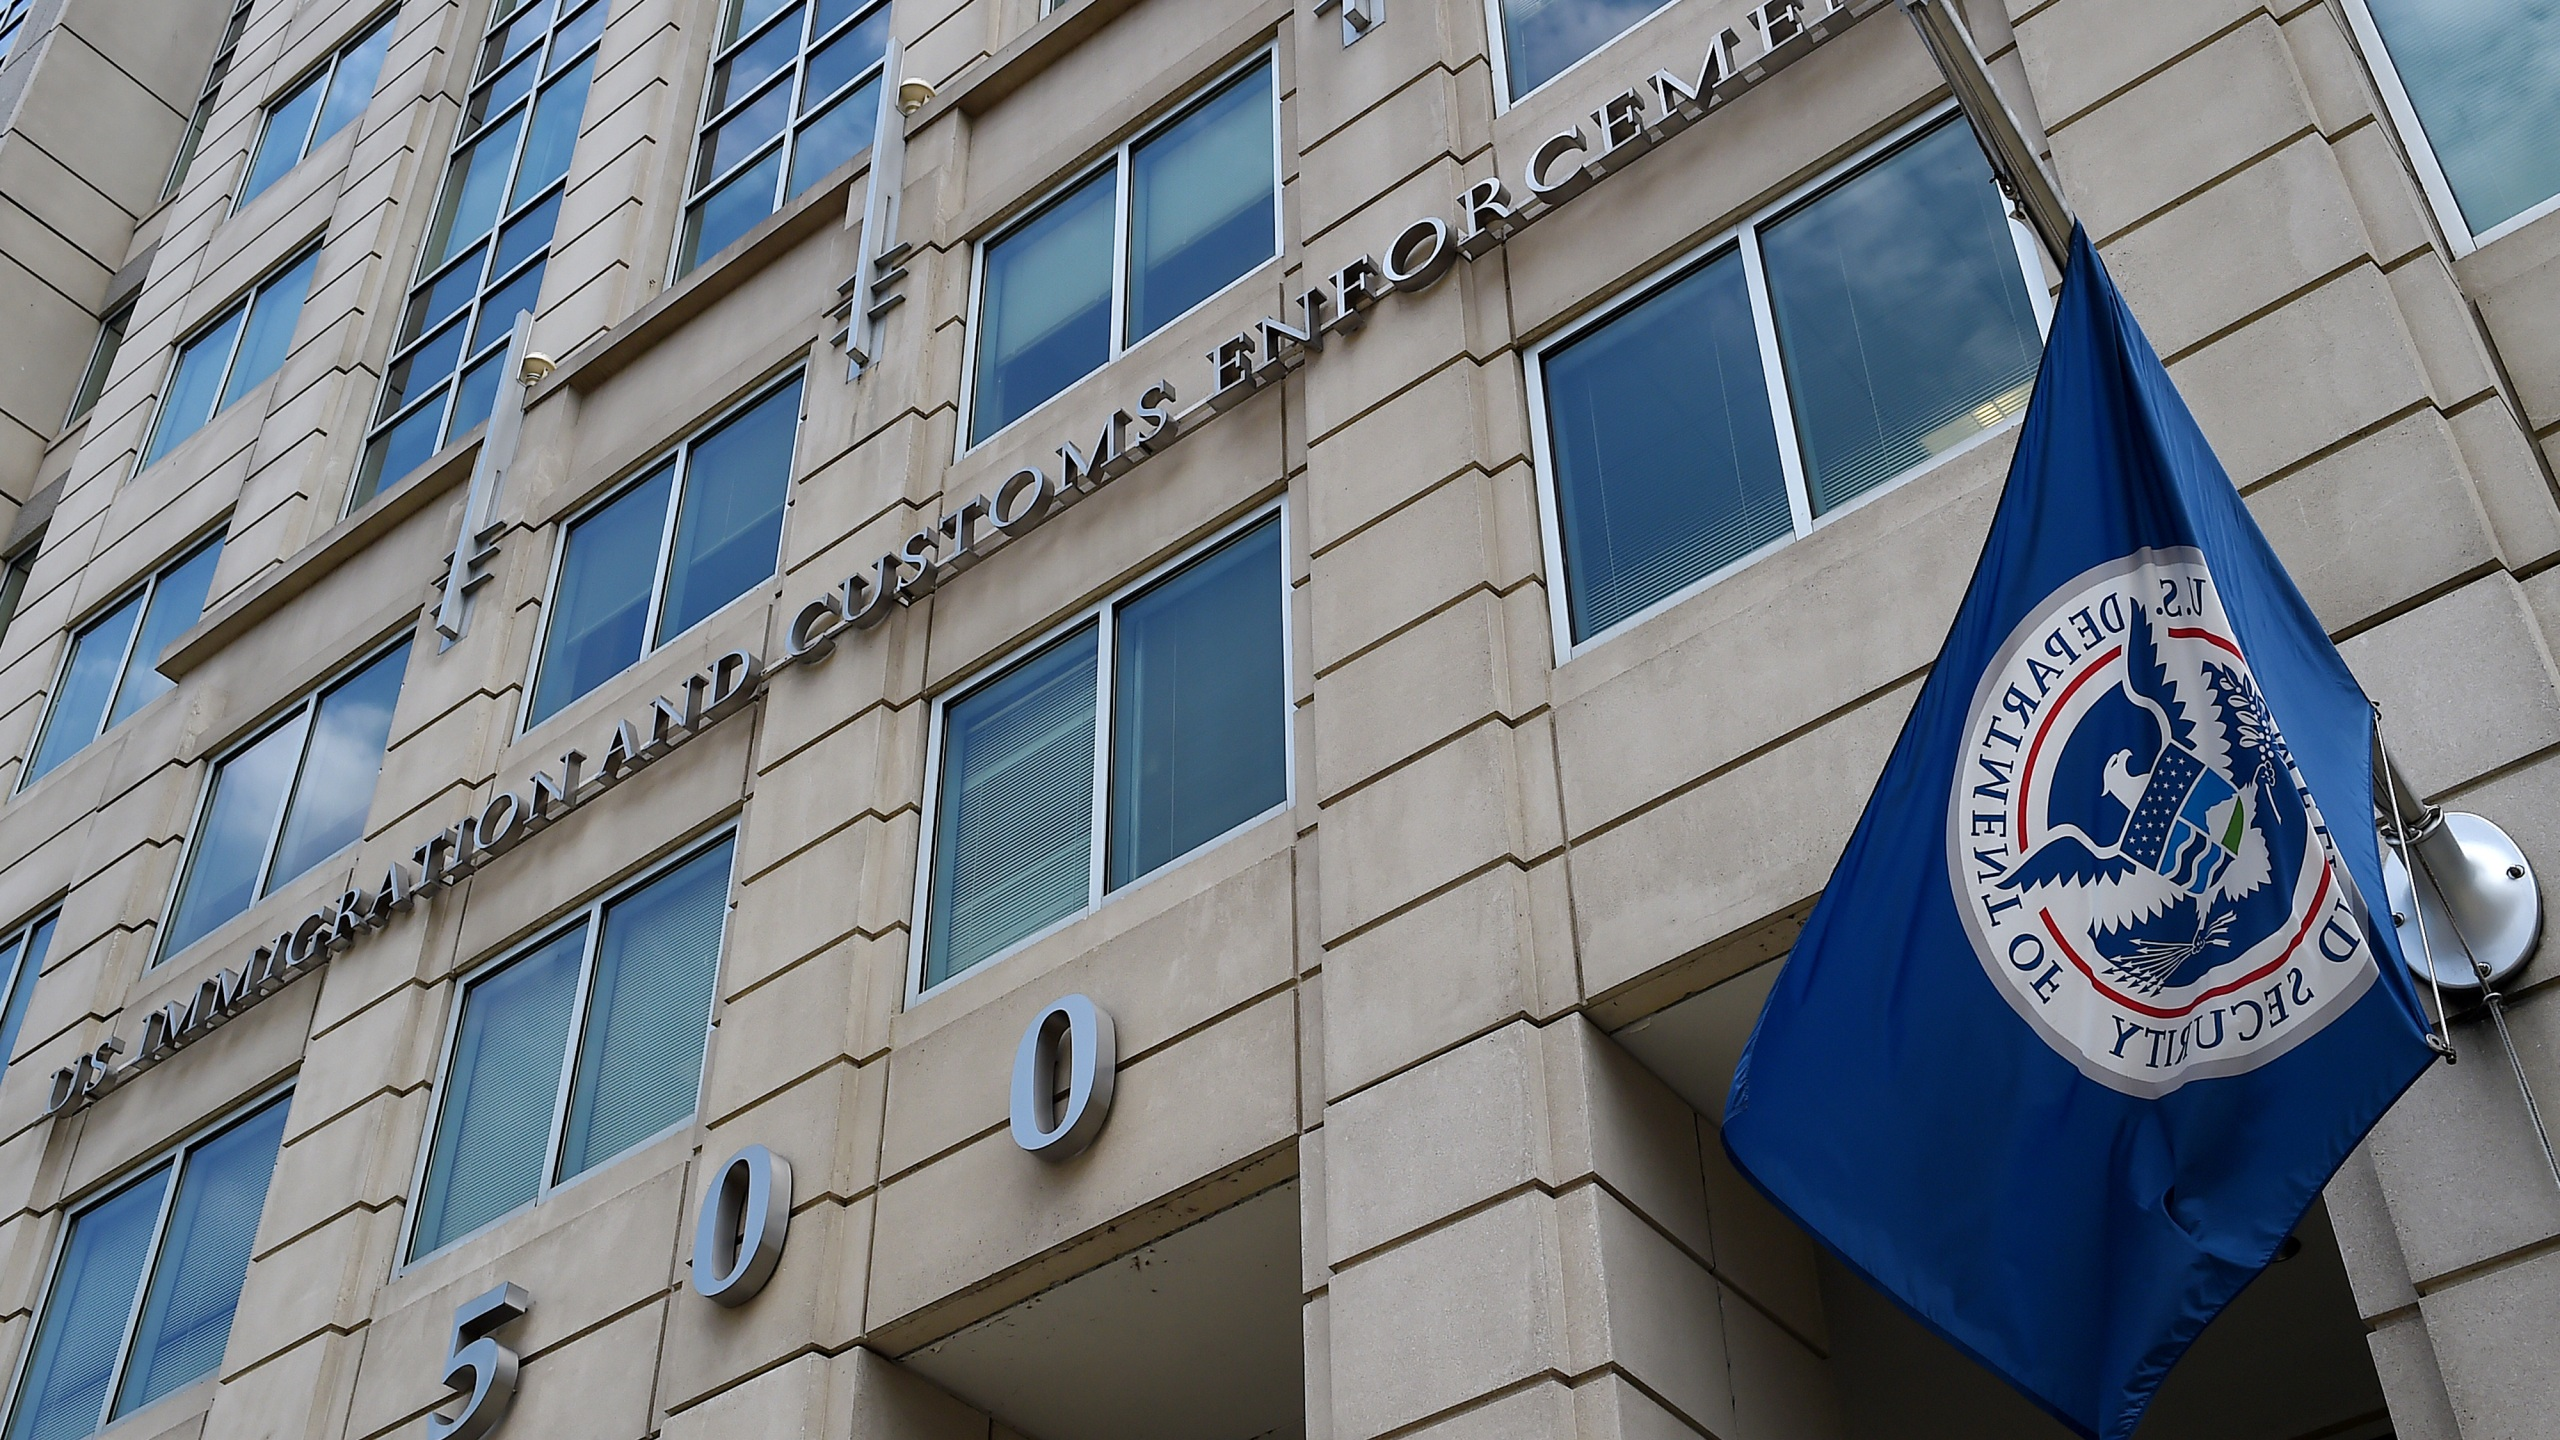 The Department of Homeland Security flag flies outside the Immigration and Customs Enforcement (ICE) headquarters in Washington, DC, on July 17, 2020. (Olivier Douliery/AFP via Getty Images)